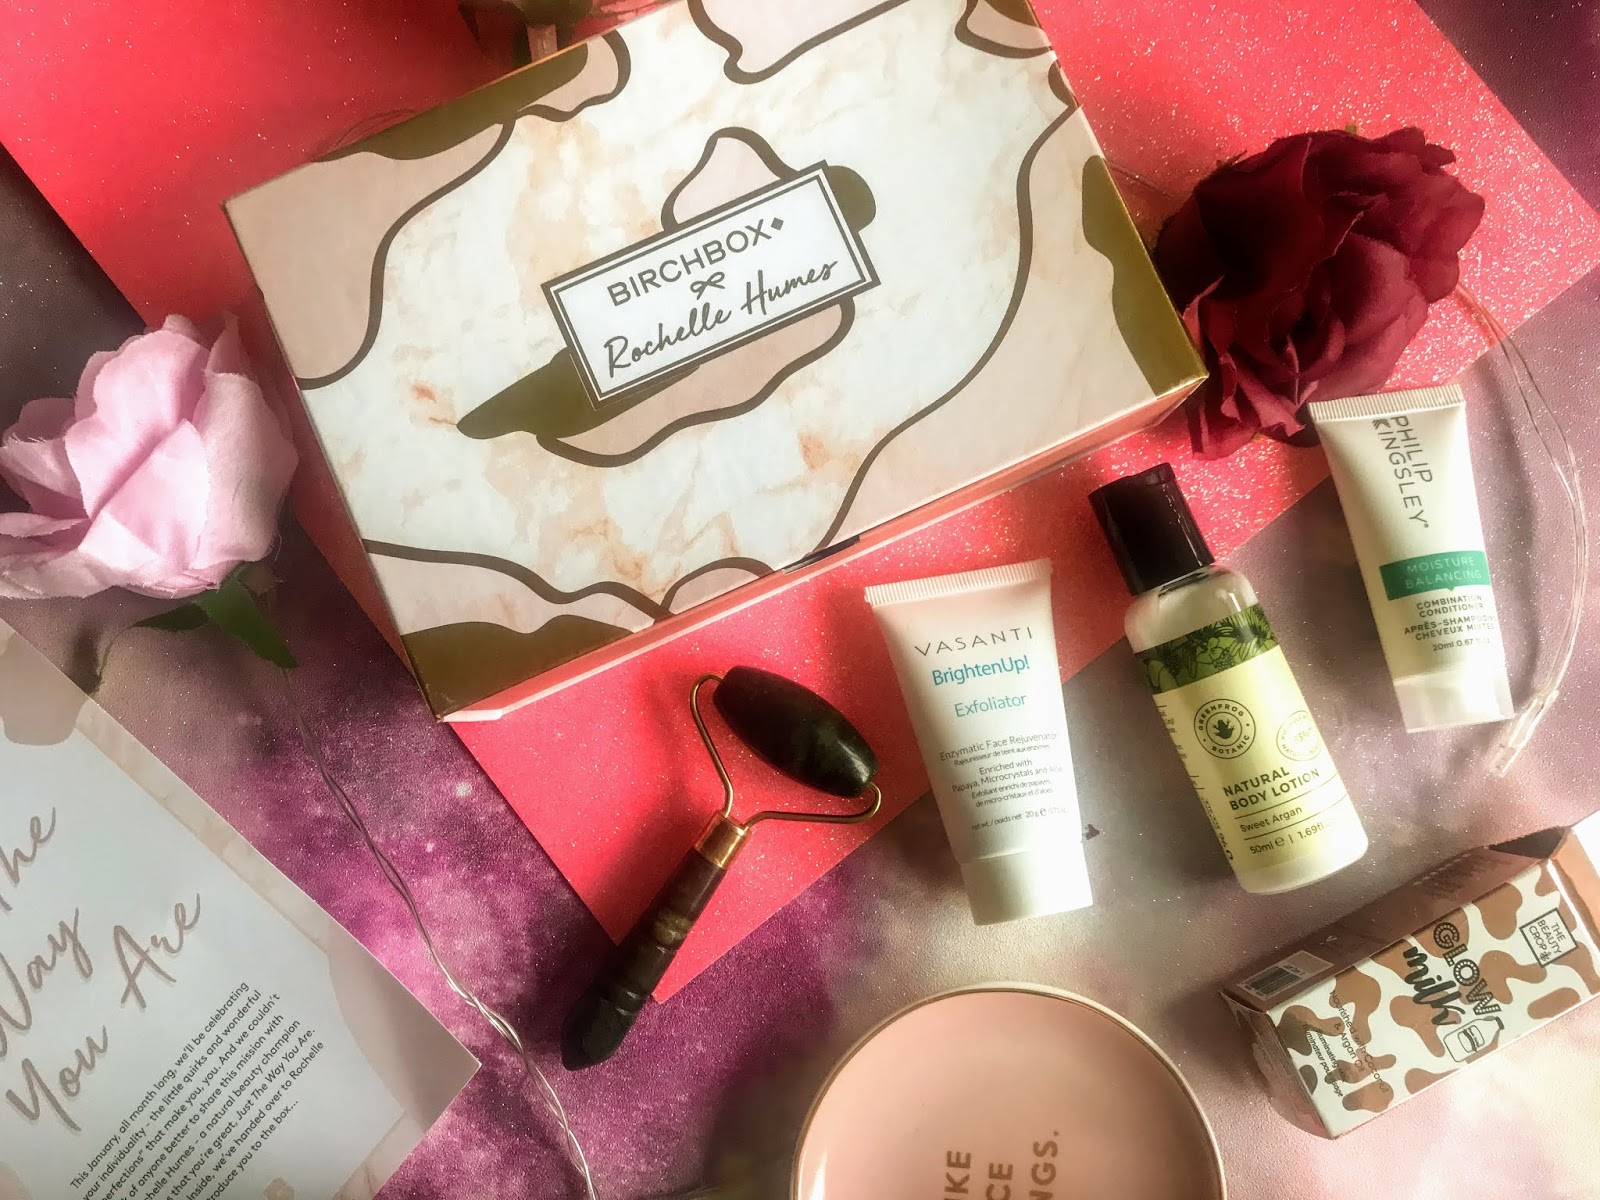 Birchbox January 2020 | Just the way you are | Review